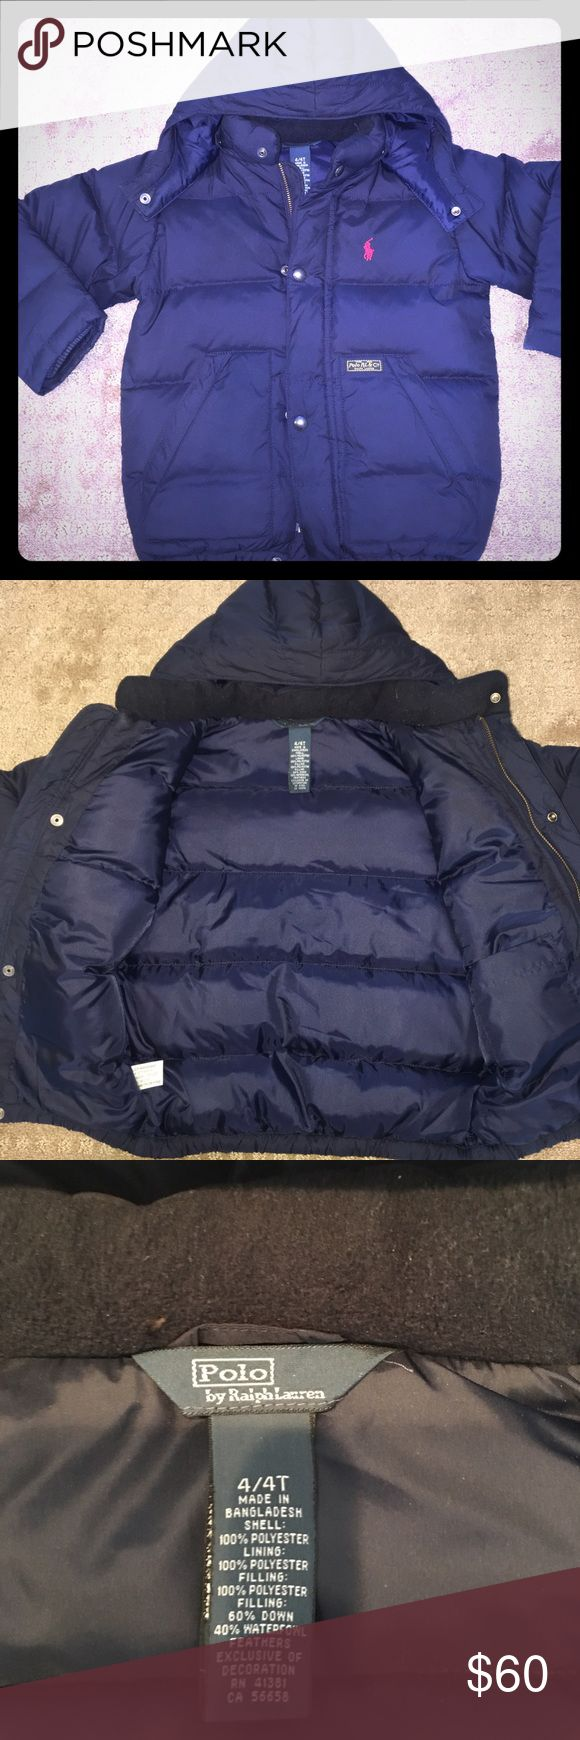 Ralph Lauren polo jacket Navy Blue Ralph Lauren quilted jacket. Hood with full front zipper. Long sleeve great condition worn a few times. Size 4T Polo by Ralph Lauren Jackets & Coats Puffers